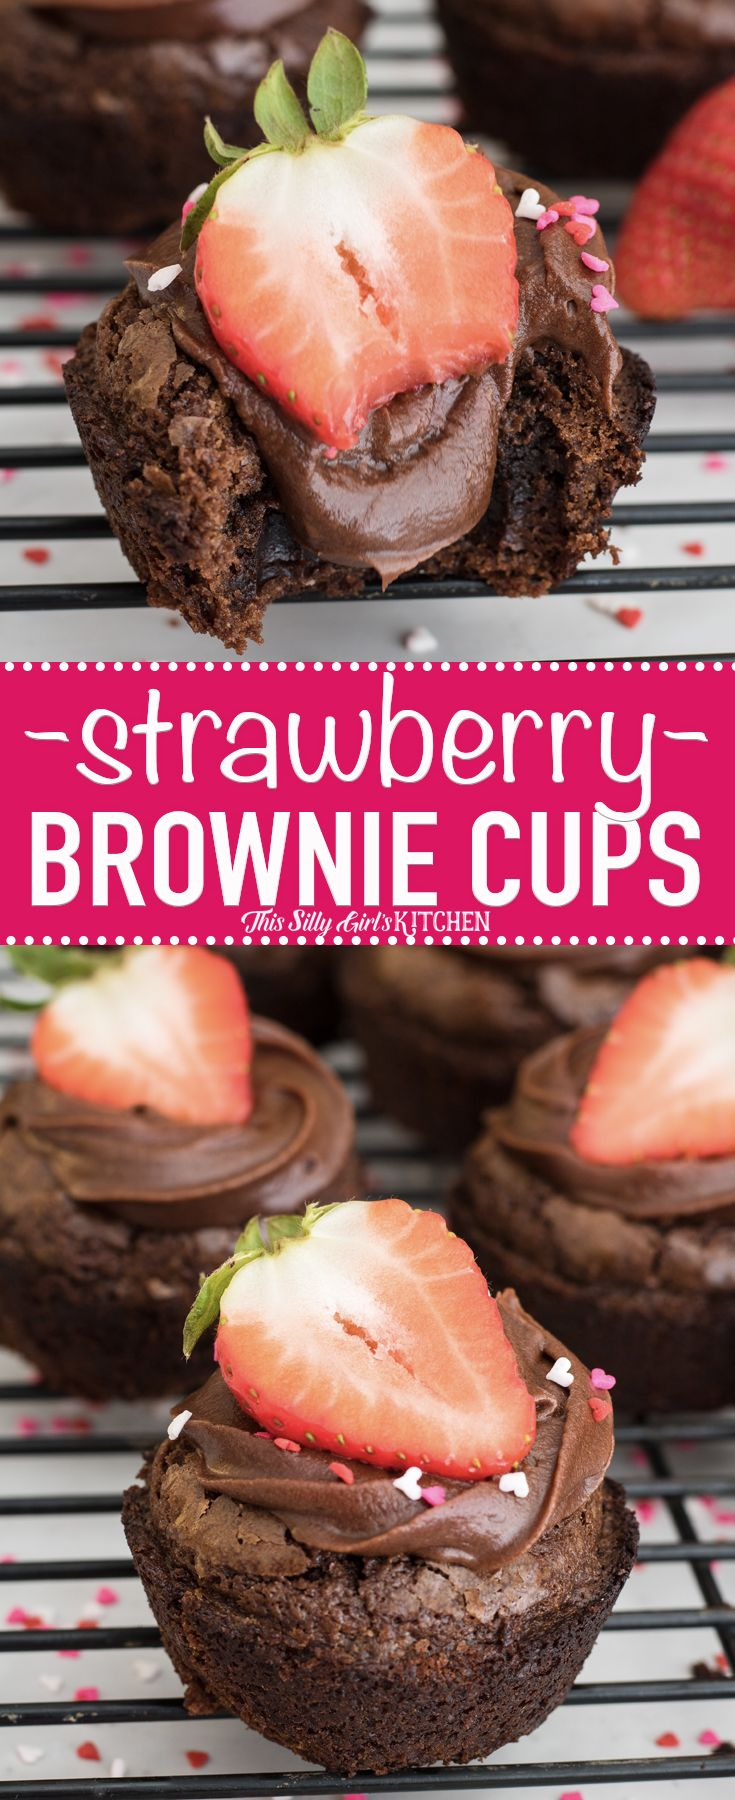 So easy to make - Strawberry Brownie Cups AD, brownie cups filled with chocolate frosting and topped with fresh strawberries! #Recipe from ThisSillyGirlsKitchen.com #brownie #strawberry #chocolate @PillsburyBaking